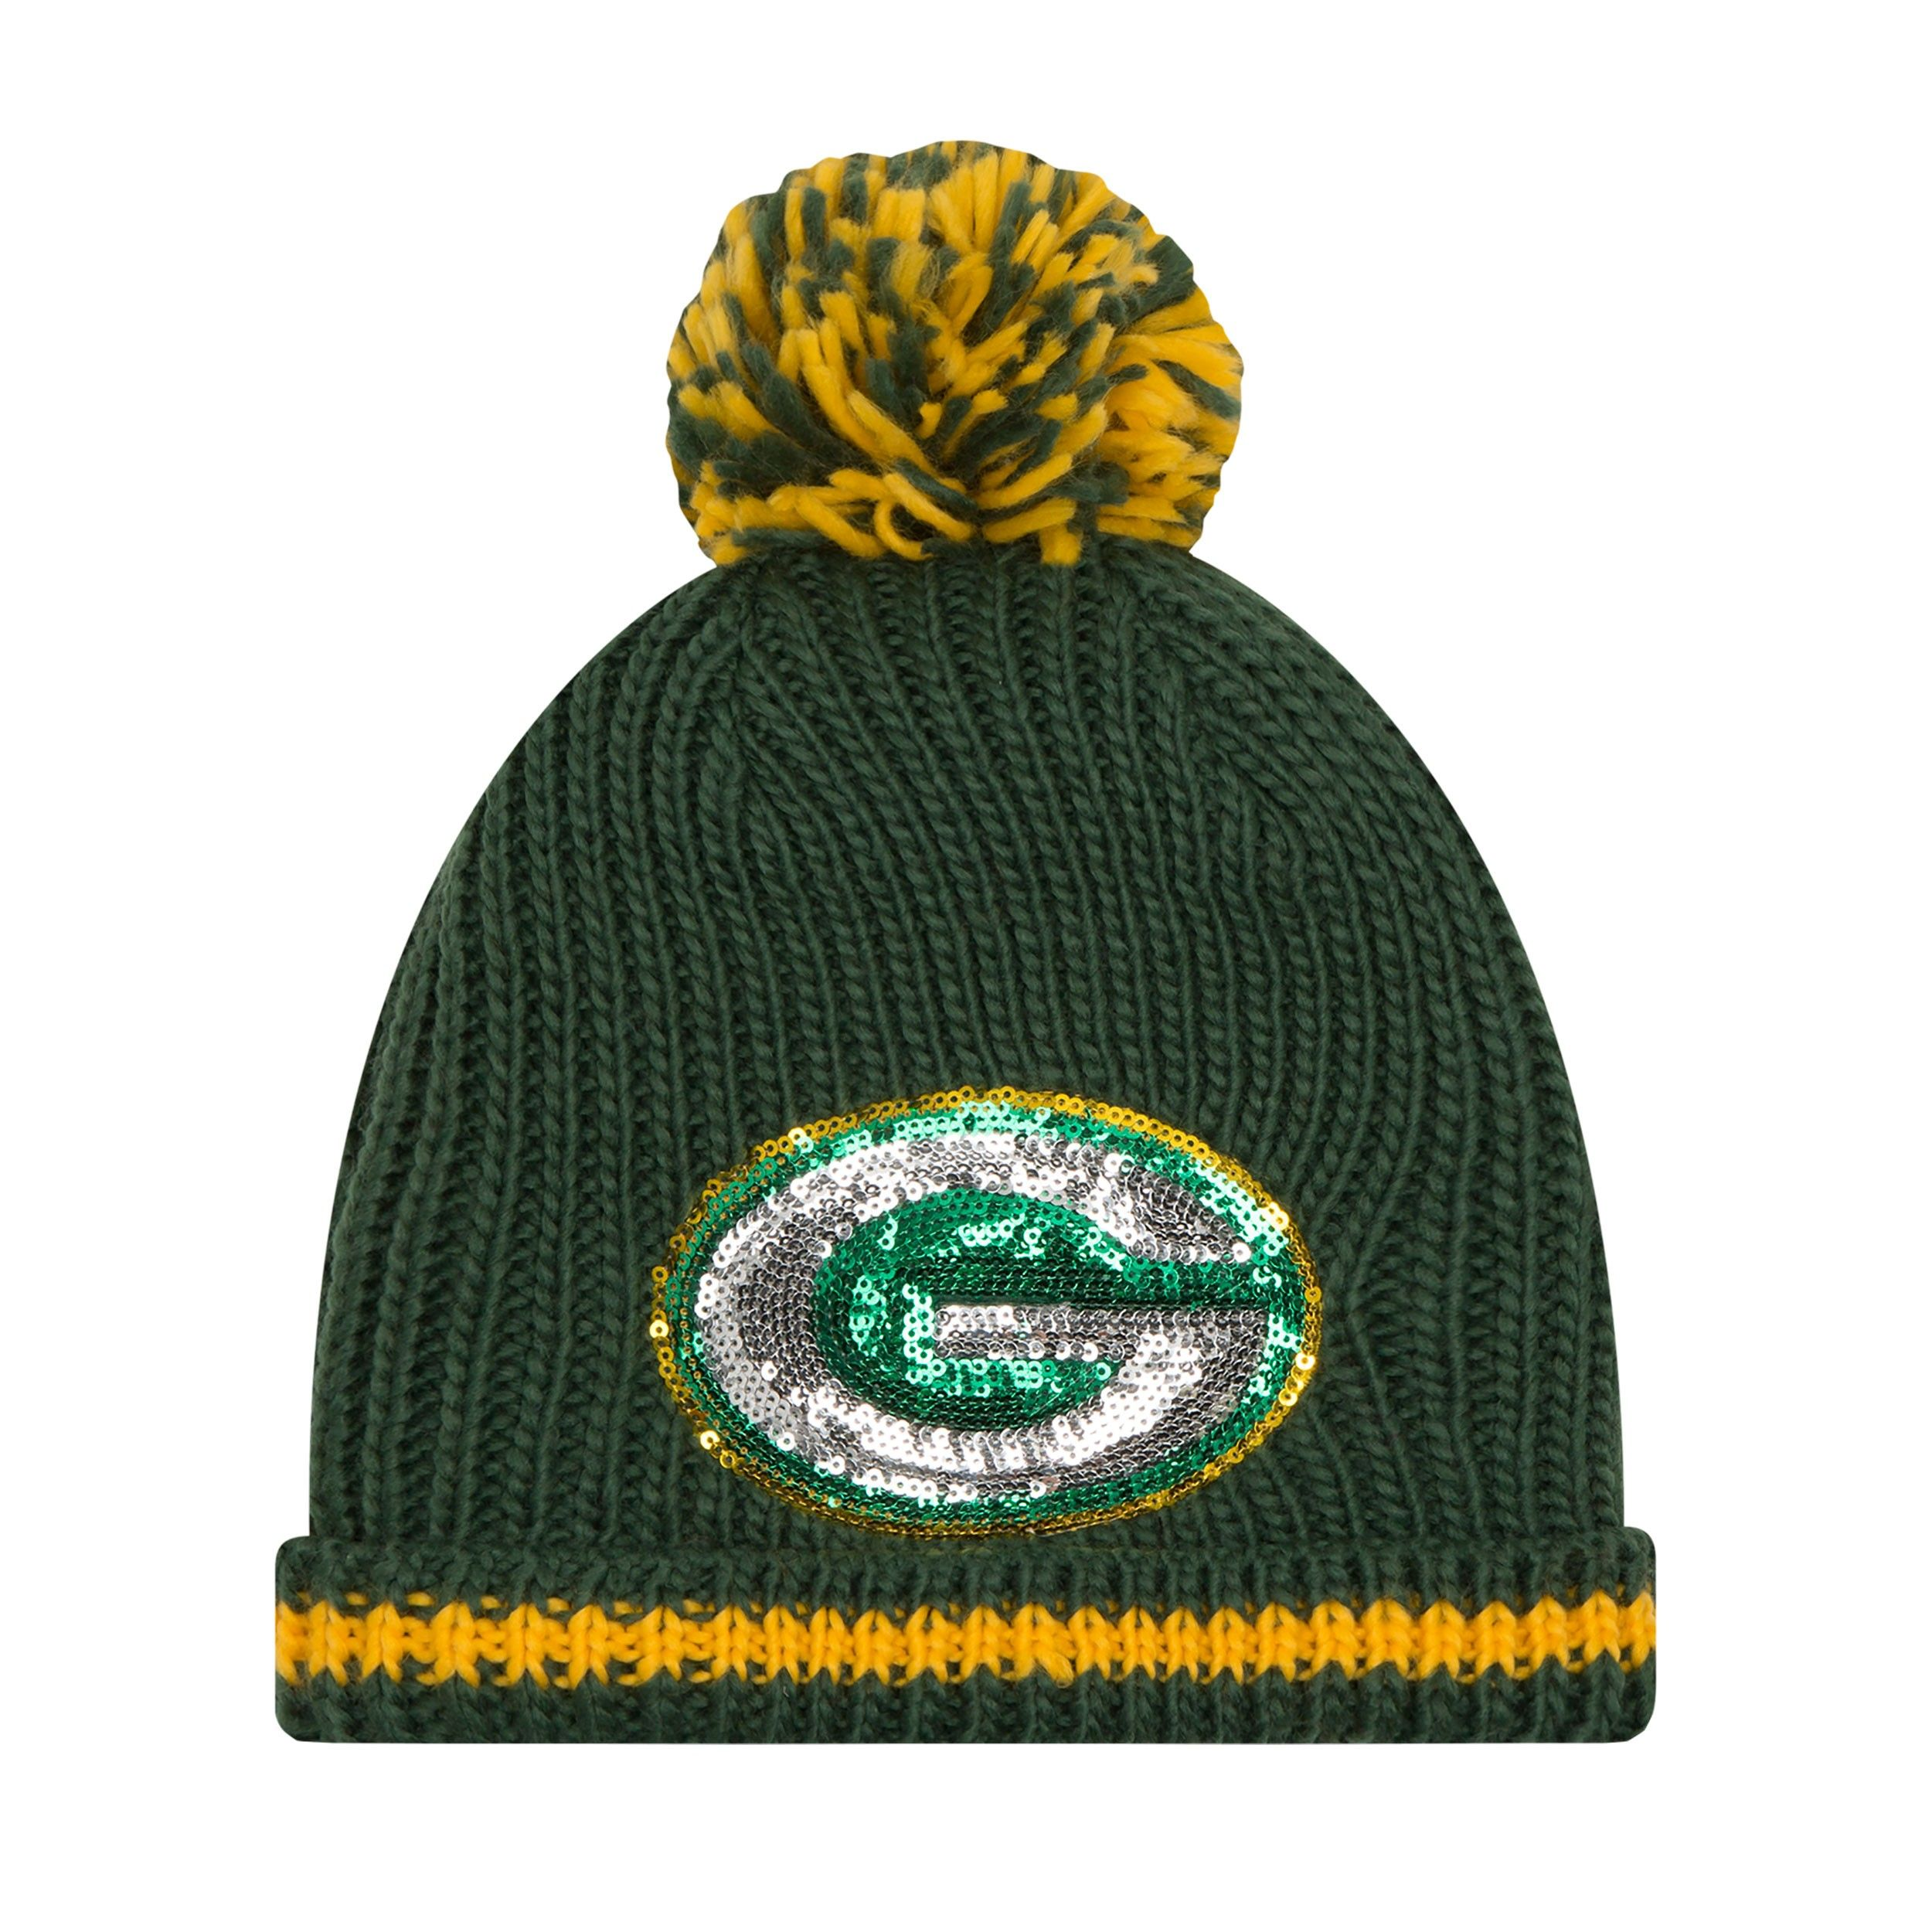 272910af3cb22f Packers Women's Sequin Frost Knit Hat. Packers Women's Sequin Frost Knit  Hat Green Bay ...